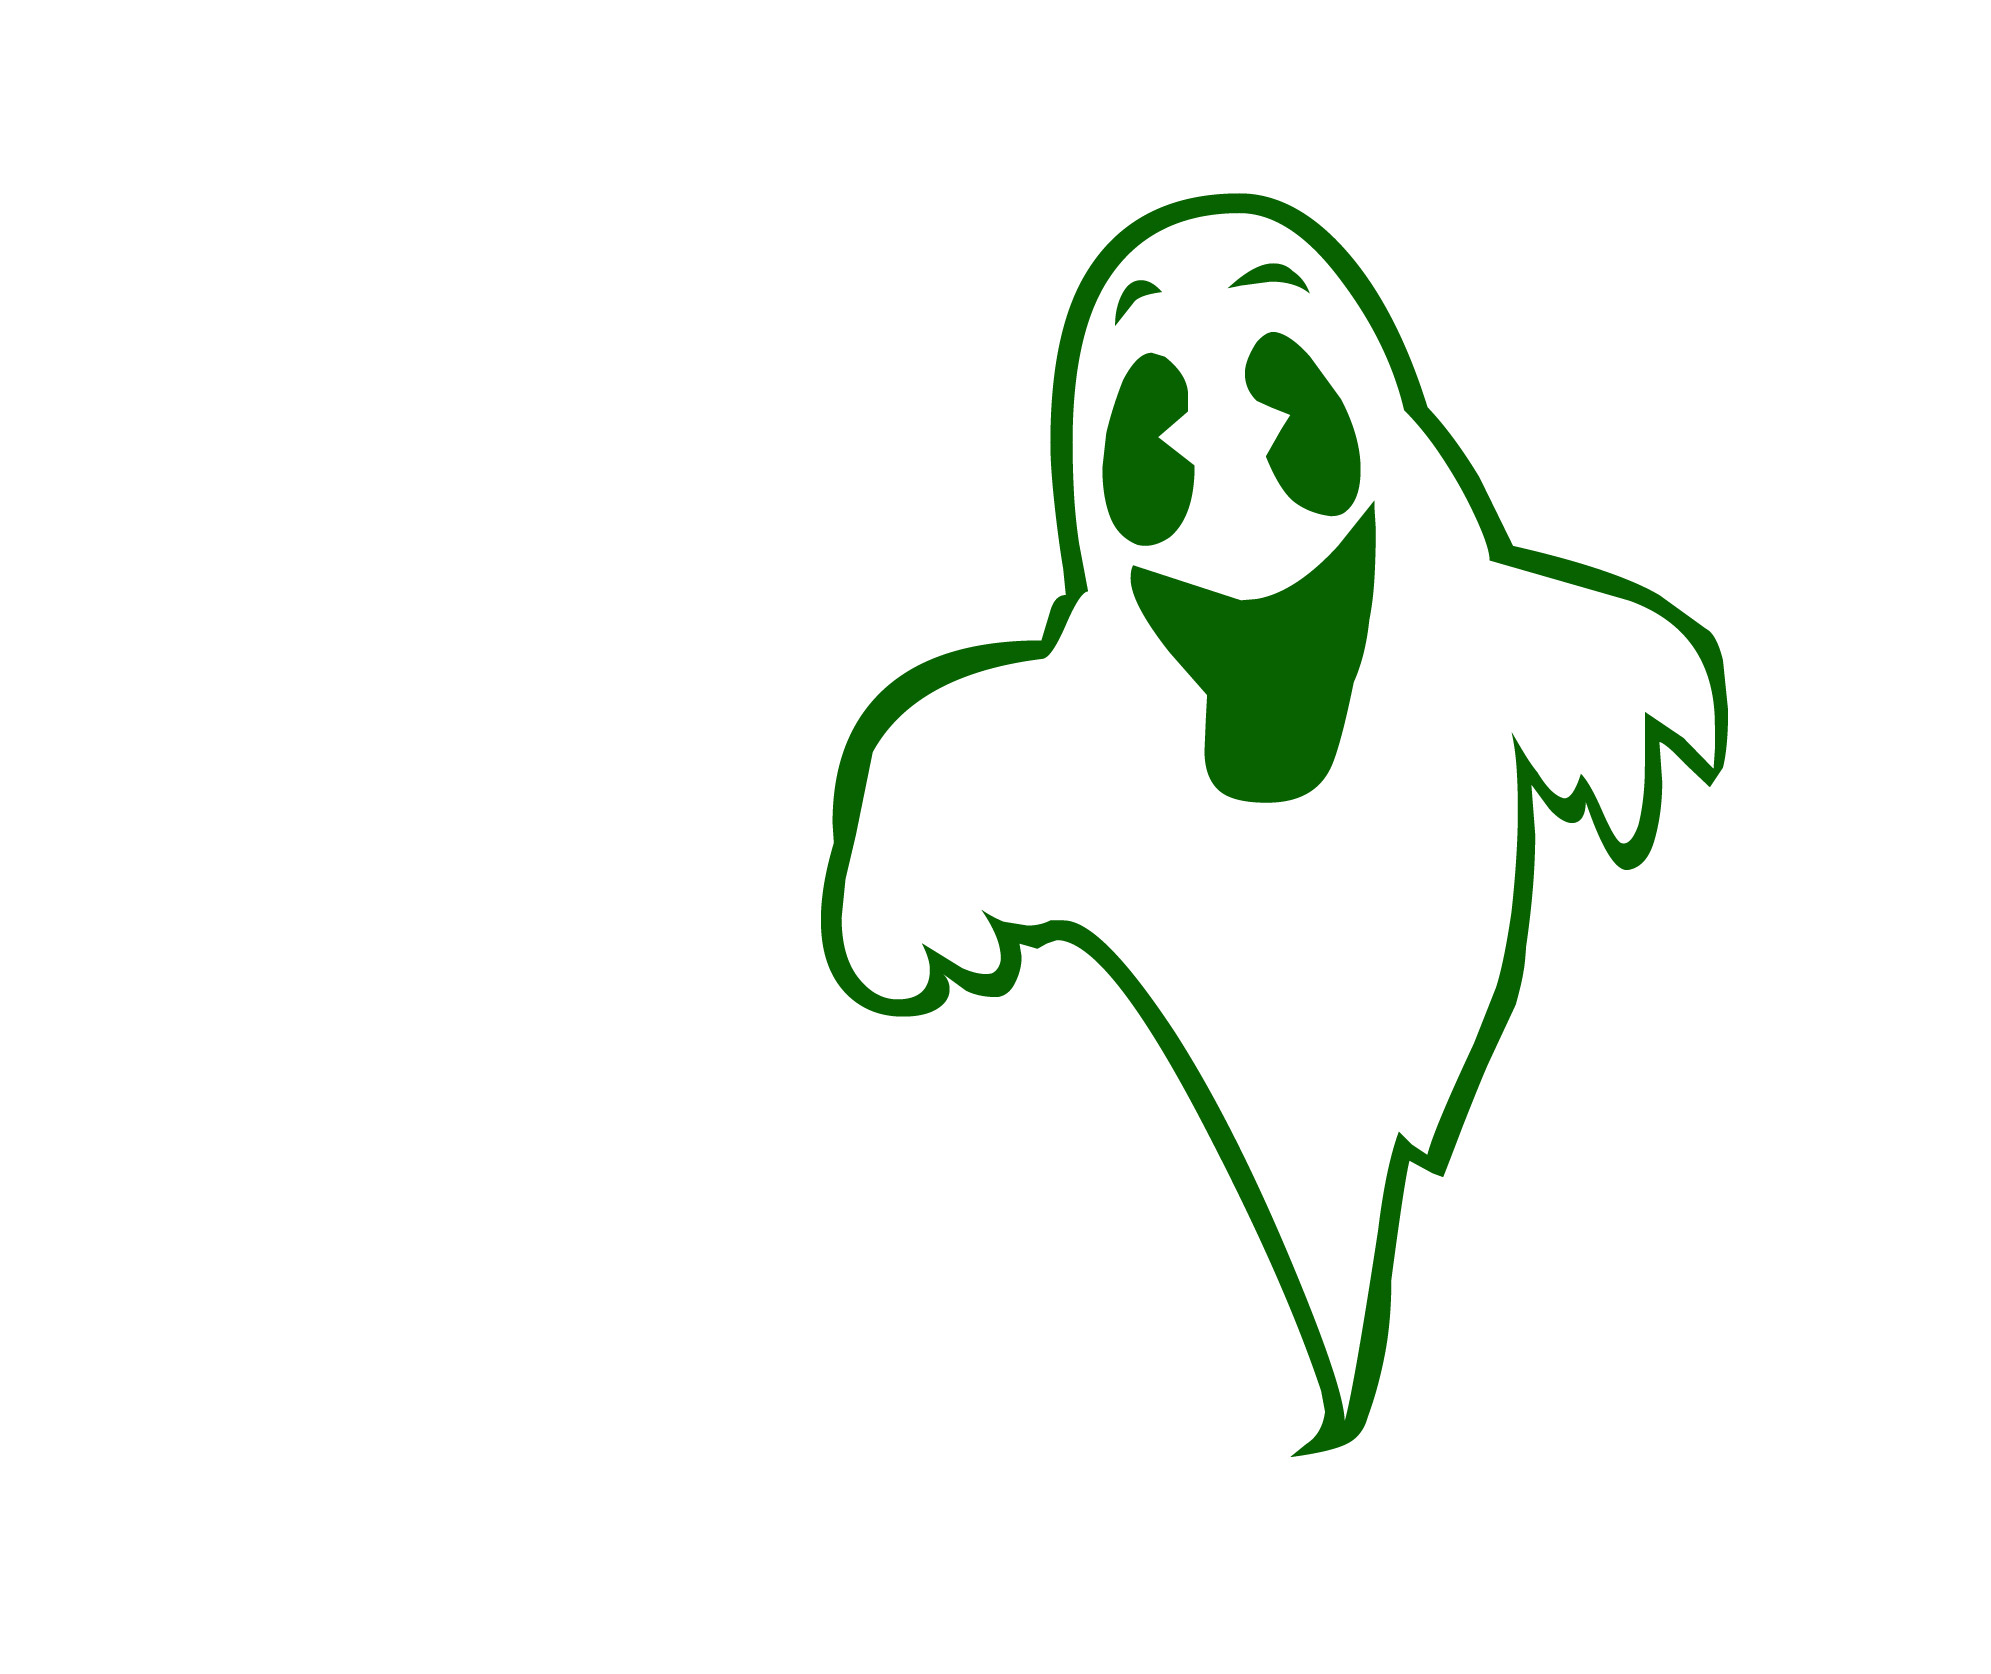 Ghostly clipart happy ghost Panda Clipart Clipart Clipart Images